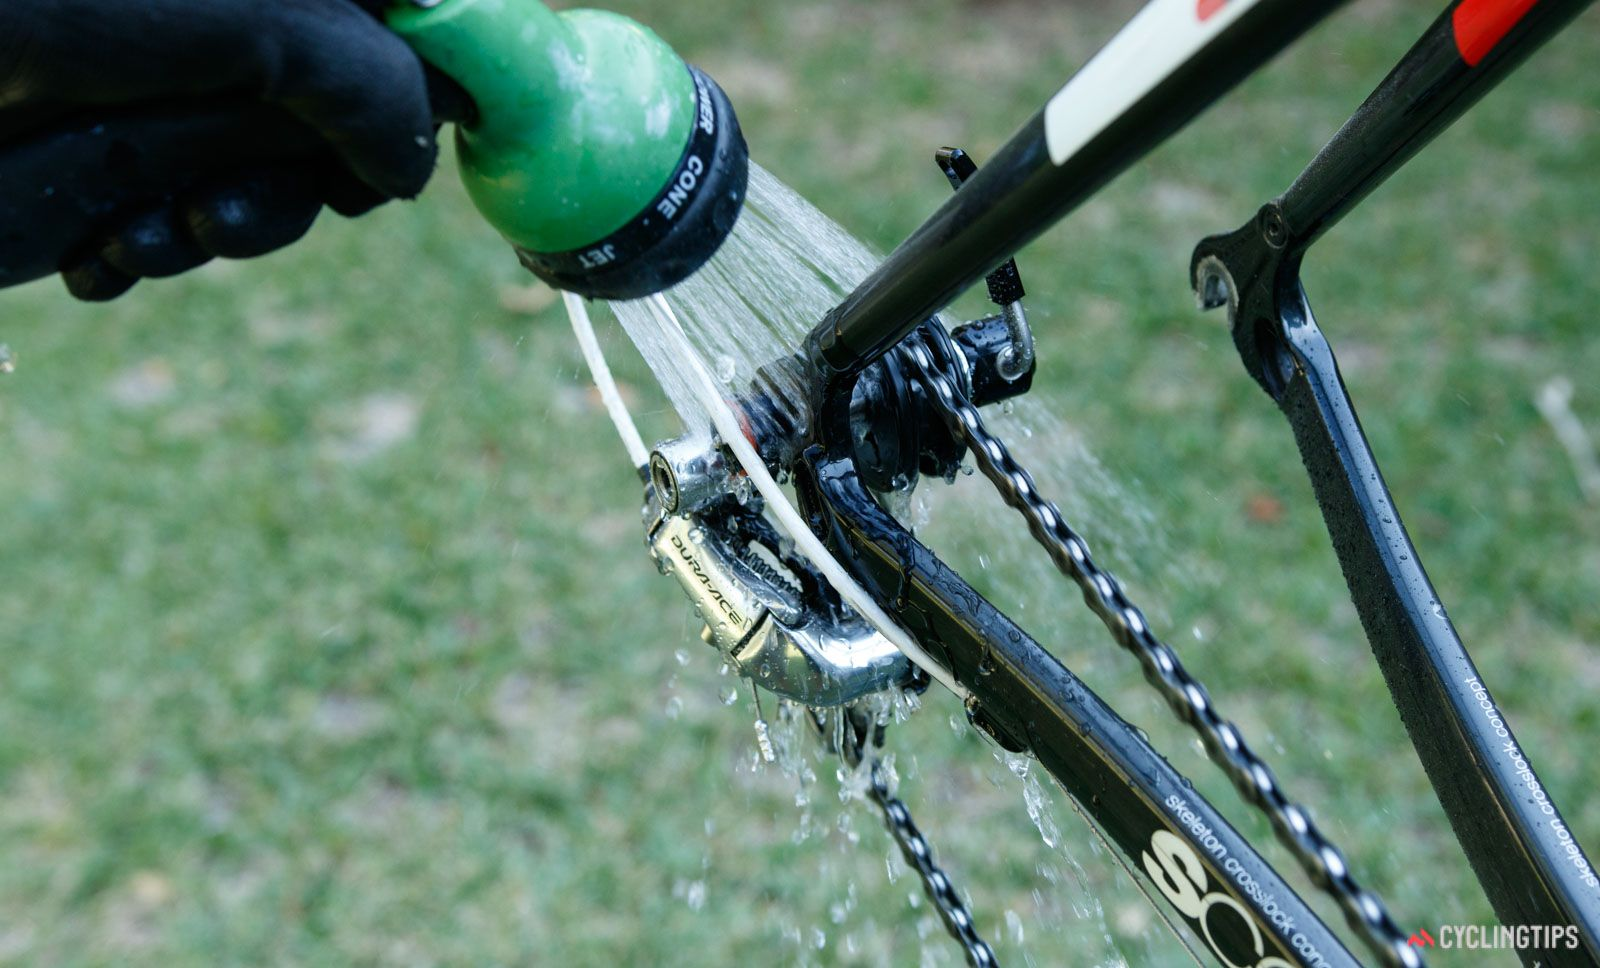 Chain Cleaning A Complete Guide From Lazy To Obsessive Cleaning